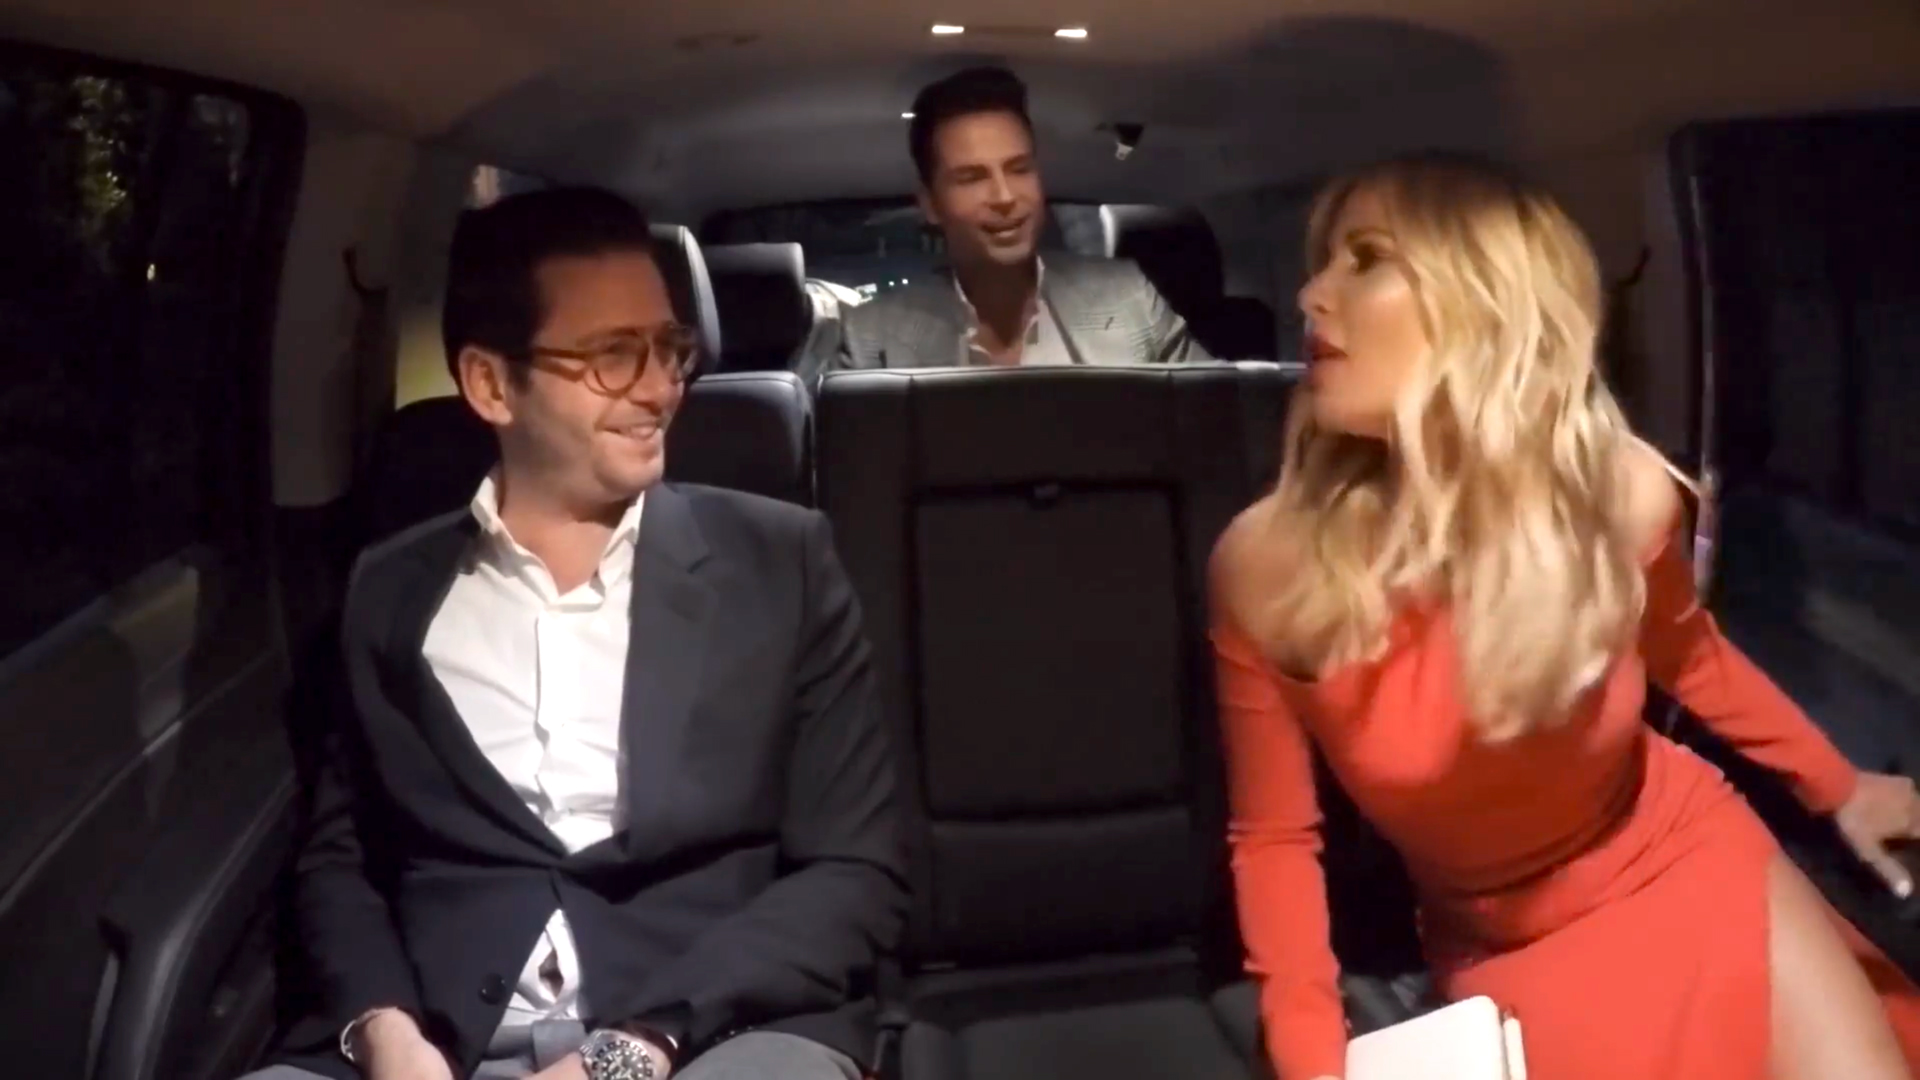 Mdlla 1212 Are Josh Flagg And Tracy Tutor Bffs